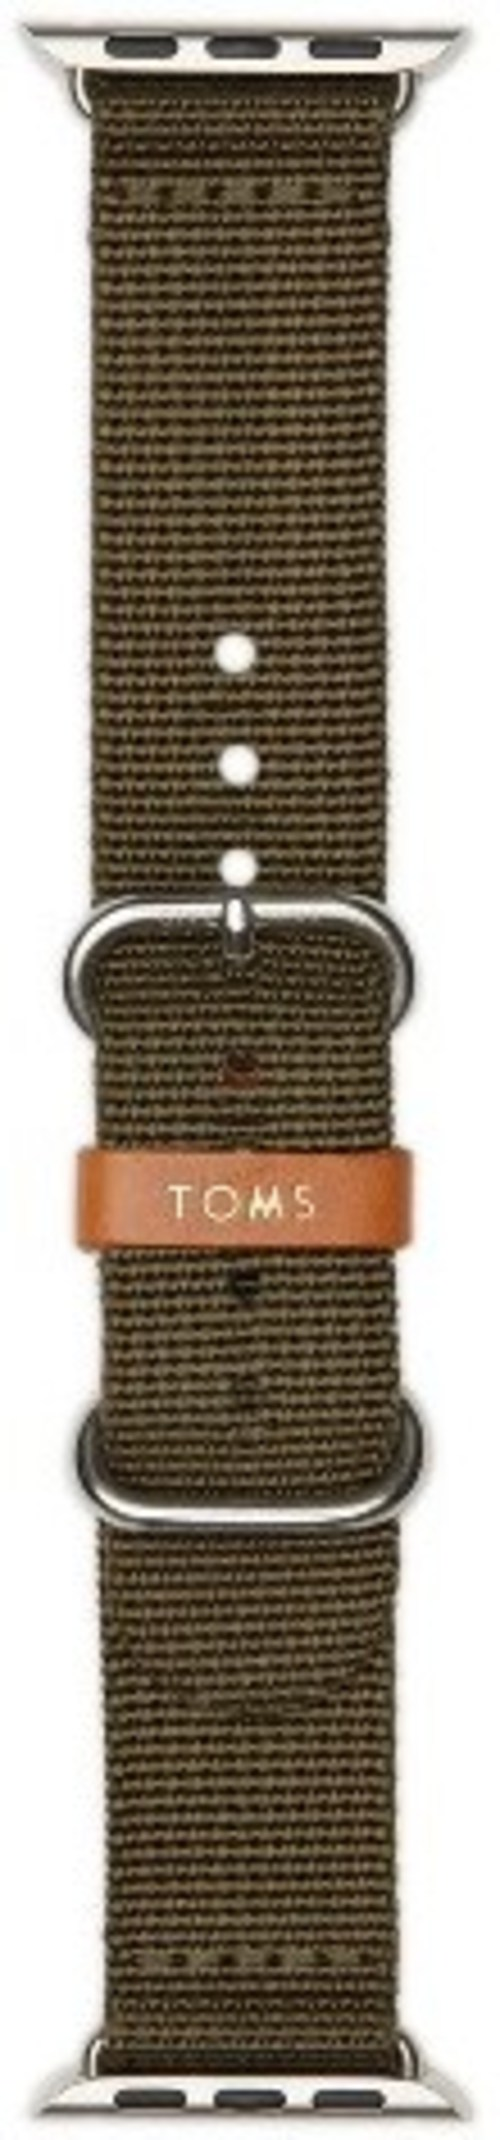 Toms 490570052958 1.6-inch Solid Band For Apple Watch - Olive Green